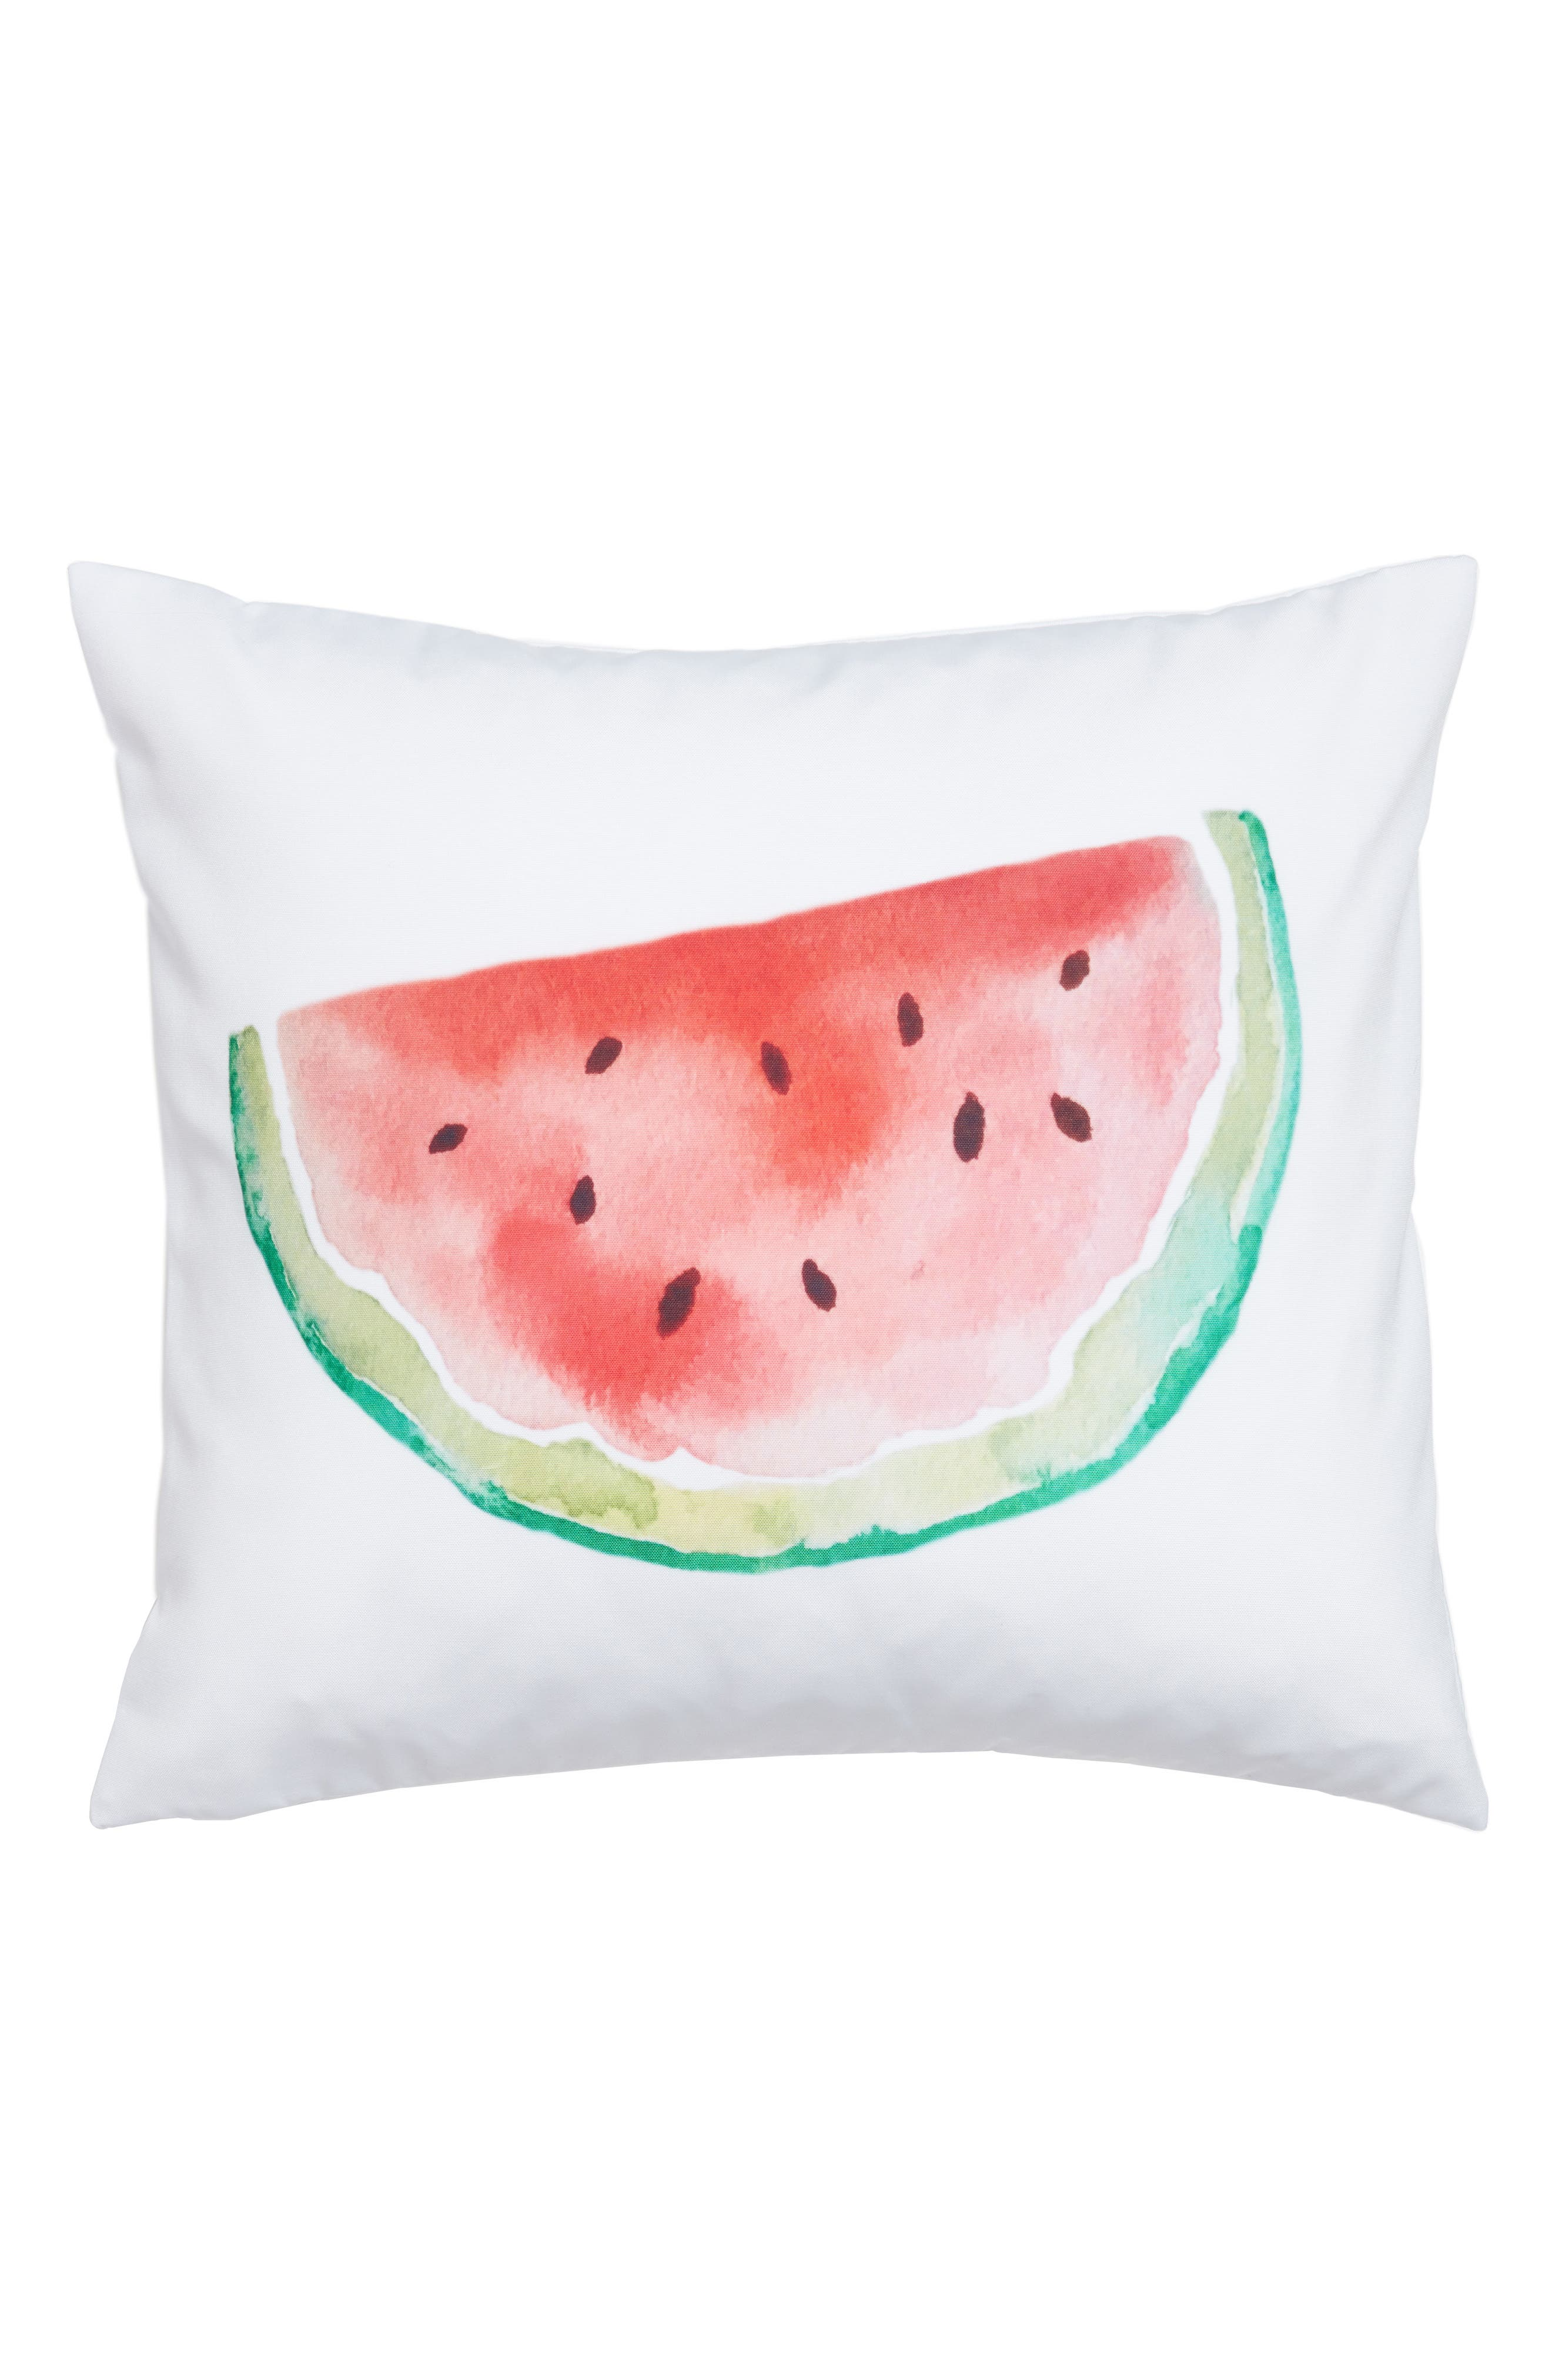 Watermelon Accent Pillow,                         Main,                         color, Red